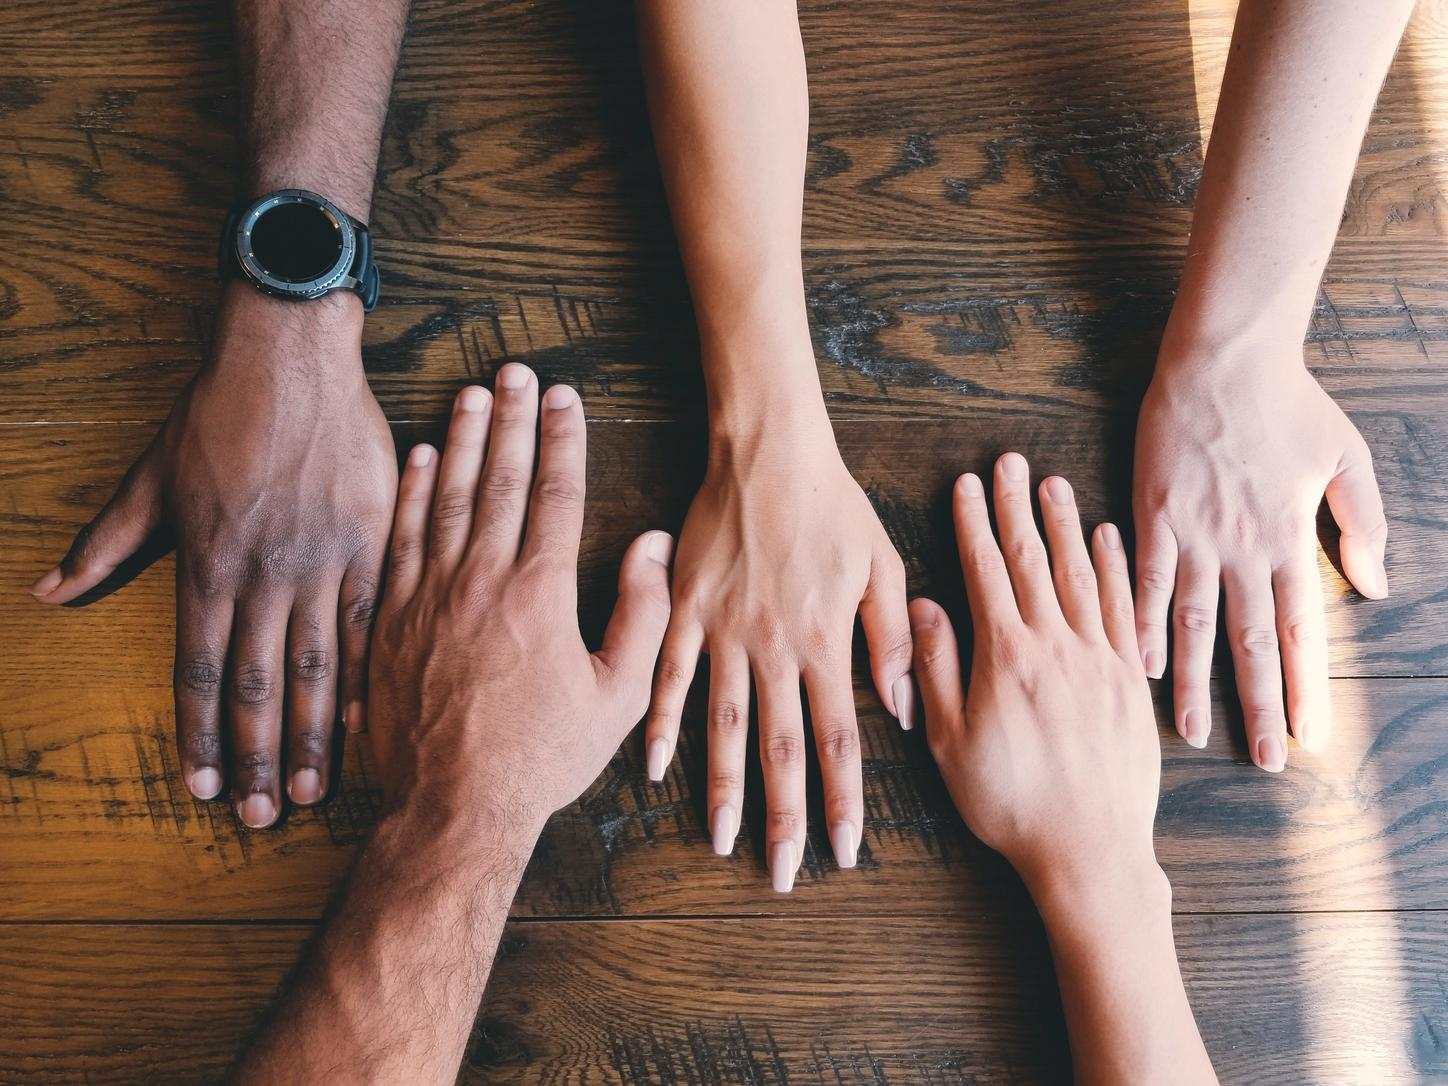 The image shows hands of different skin colors.